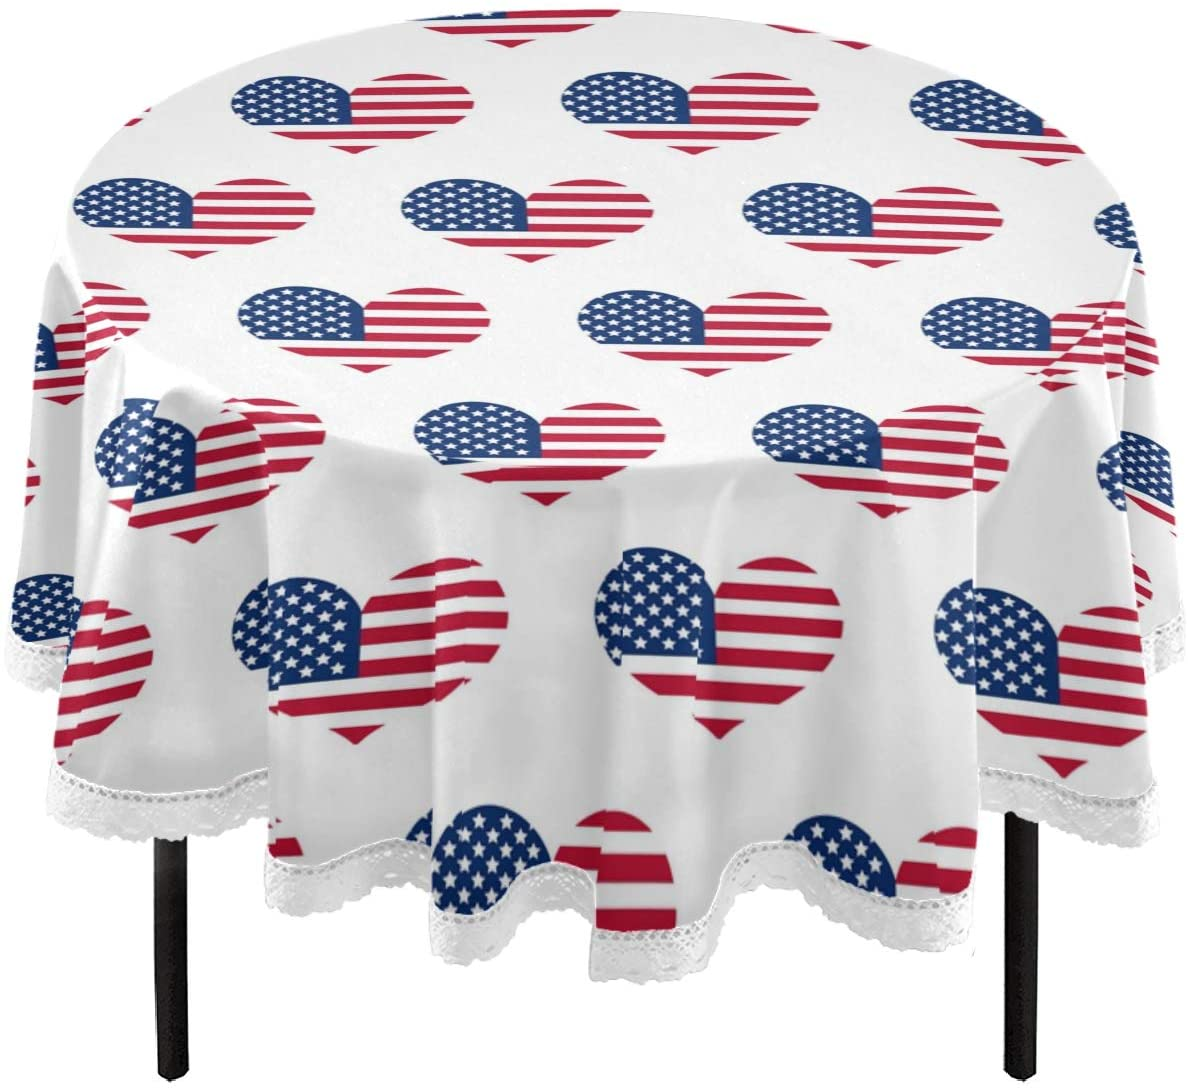 Oarencol Patriotic Heart American Flag July 4Th Round Tablecloth 60 Inch Independence Day Table Cover Washable Polyester Table Cloth for Buffet Party Dinner Picnic